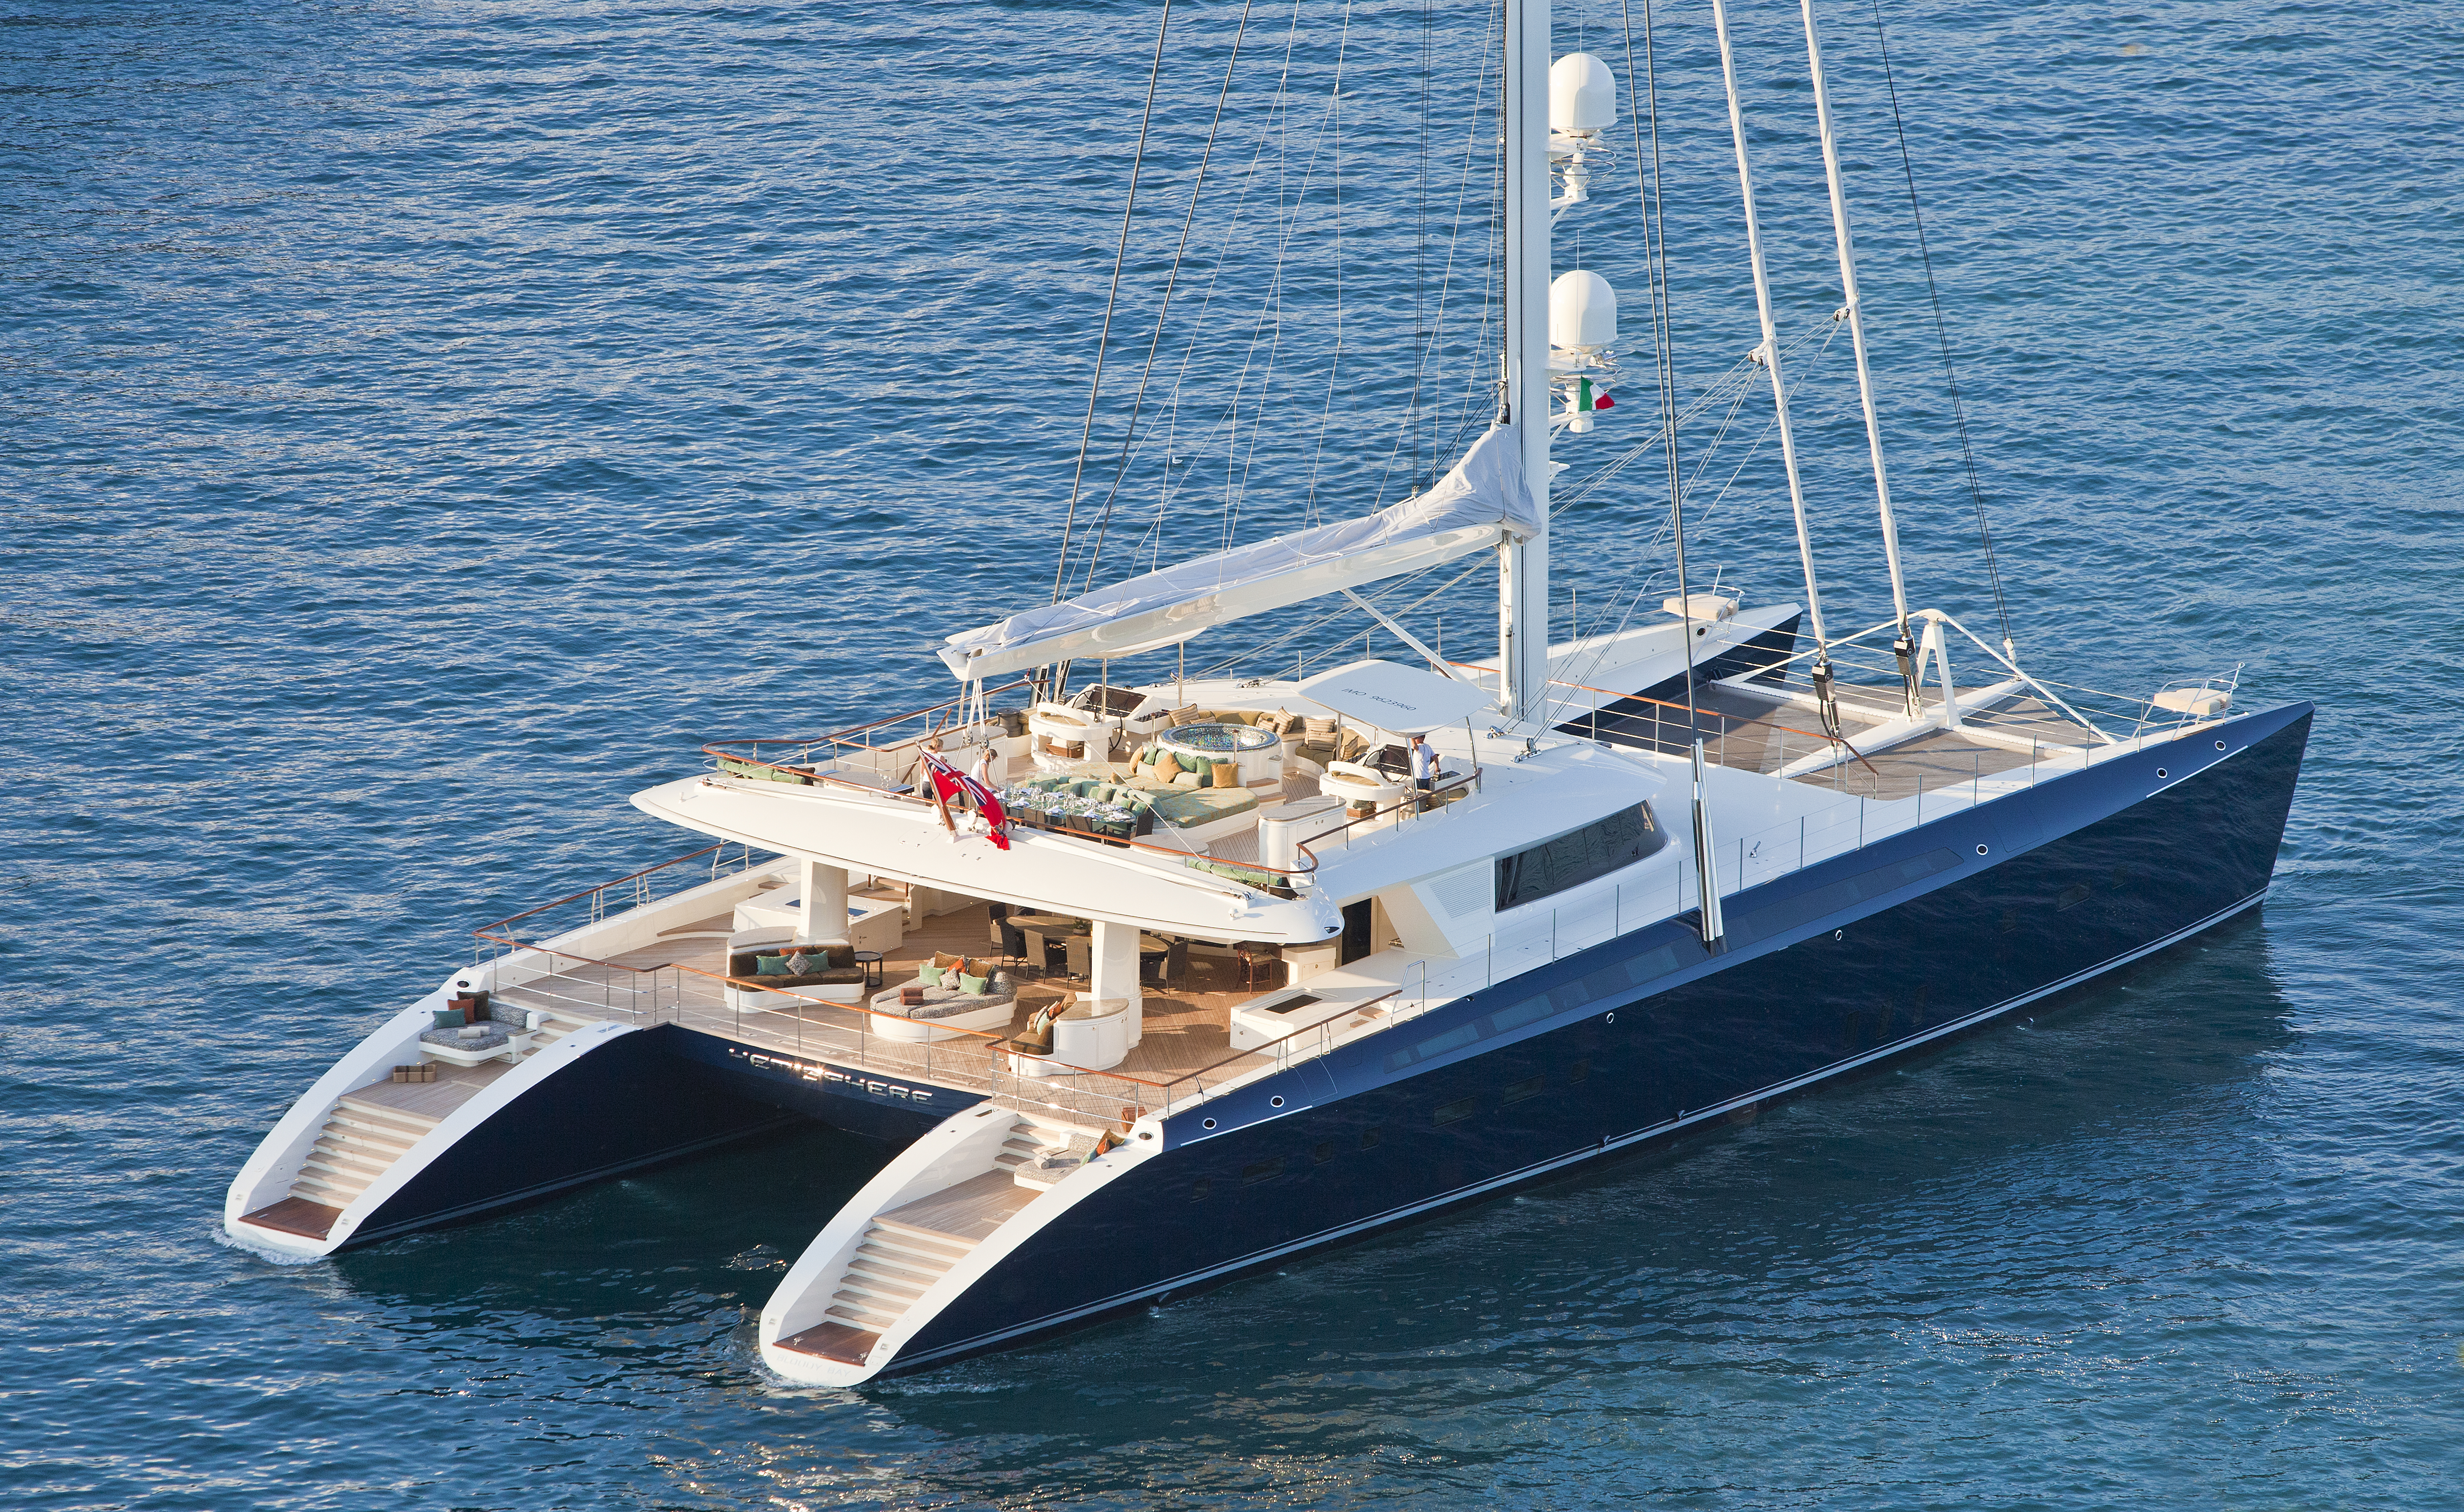 The Hemisphere is the largest sailing yacht in the world, and will be in Southeast Asia this season. She comes with a dive training center and two dive instructors.